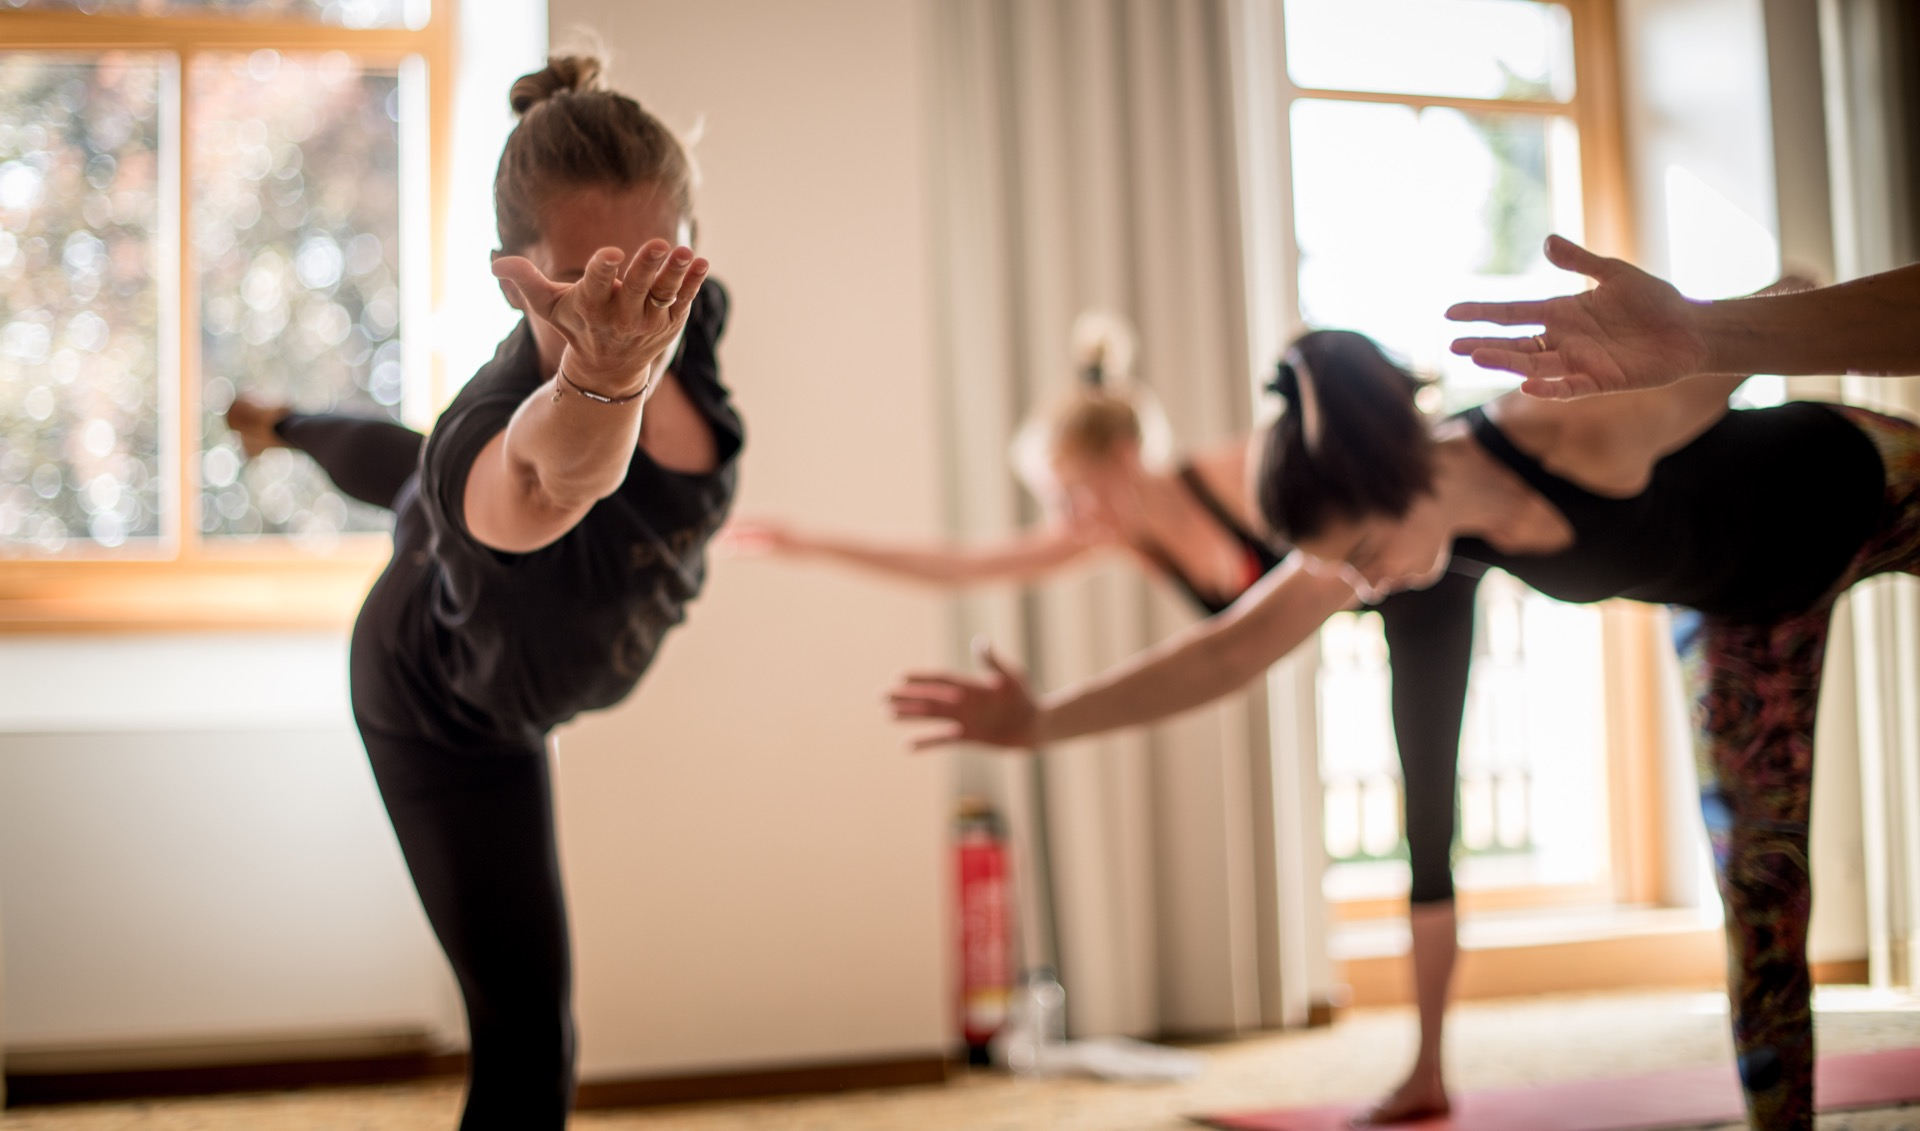 Hie-Kim-Friends-2019-Yoga-Retreat-Alina-Matis-Photography-028 - Hie Kim Yoga - Yoga Retreat - Yoga Workshops und Reisen